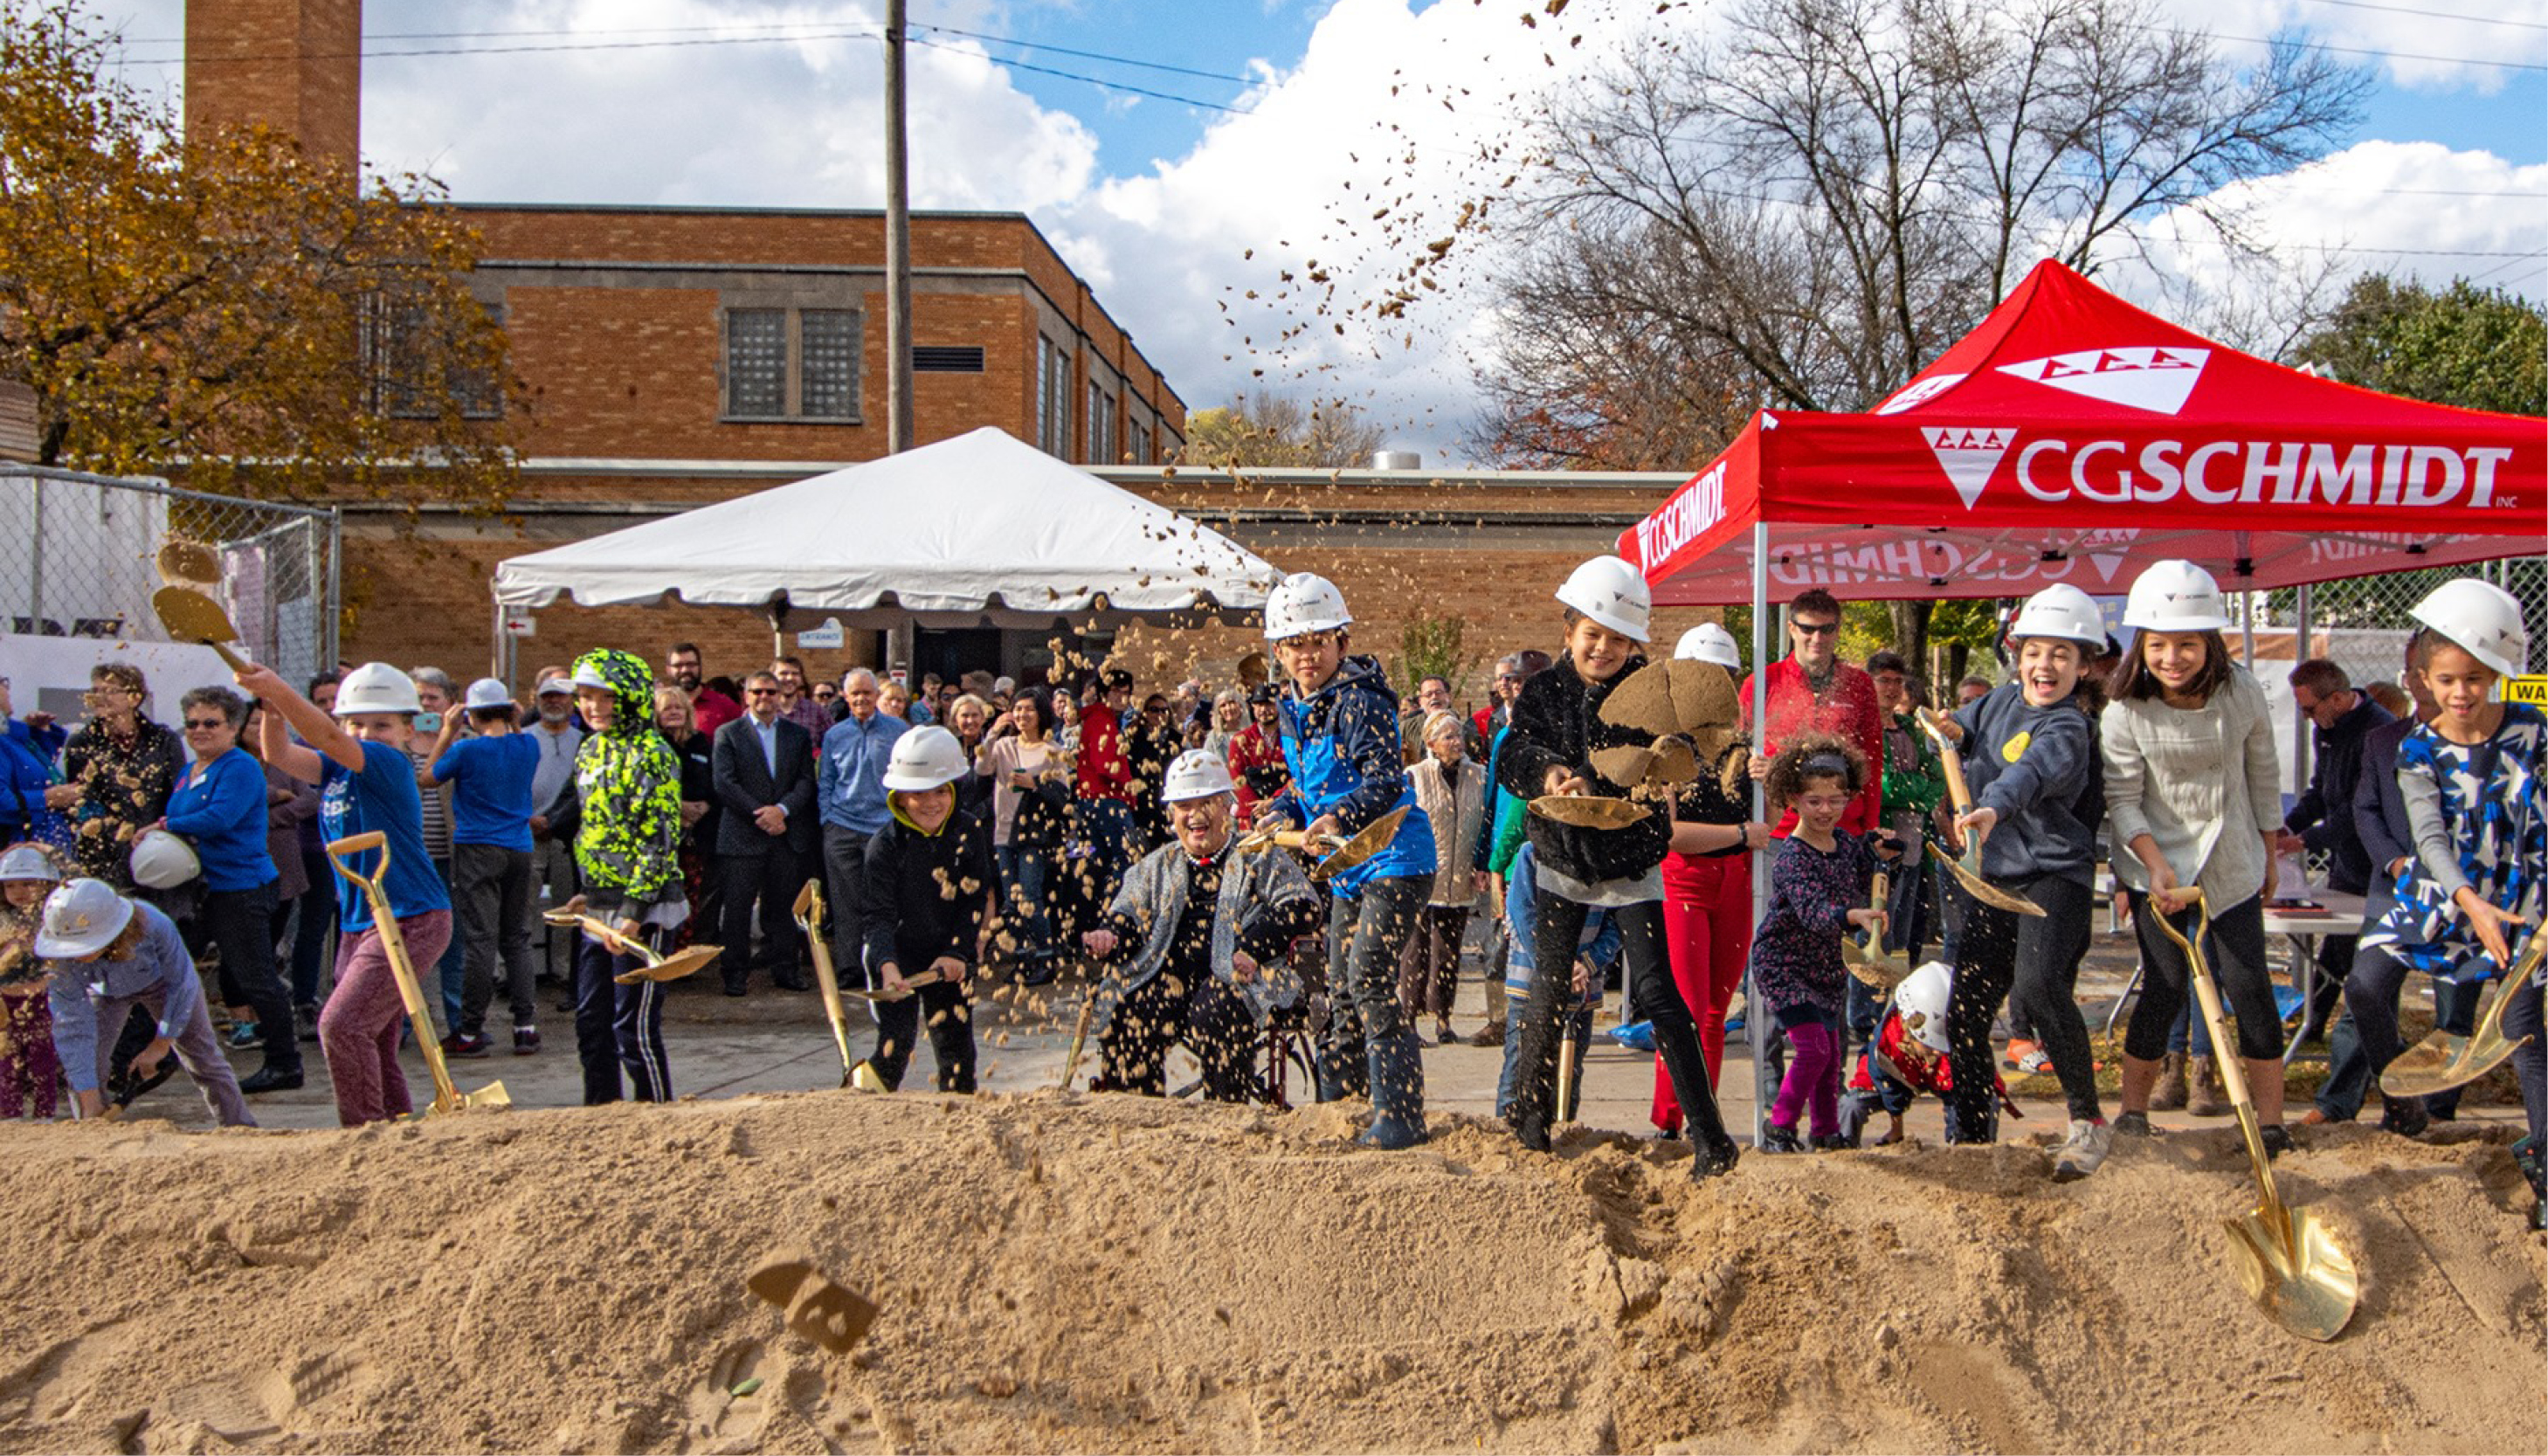 Groundbreaking Event for Madison's new Youth Arts Center Image